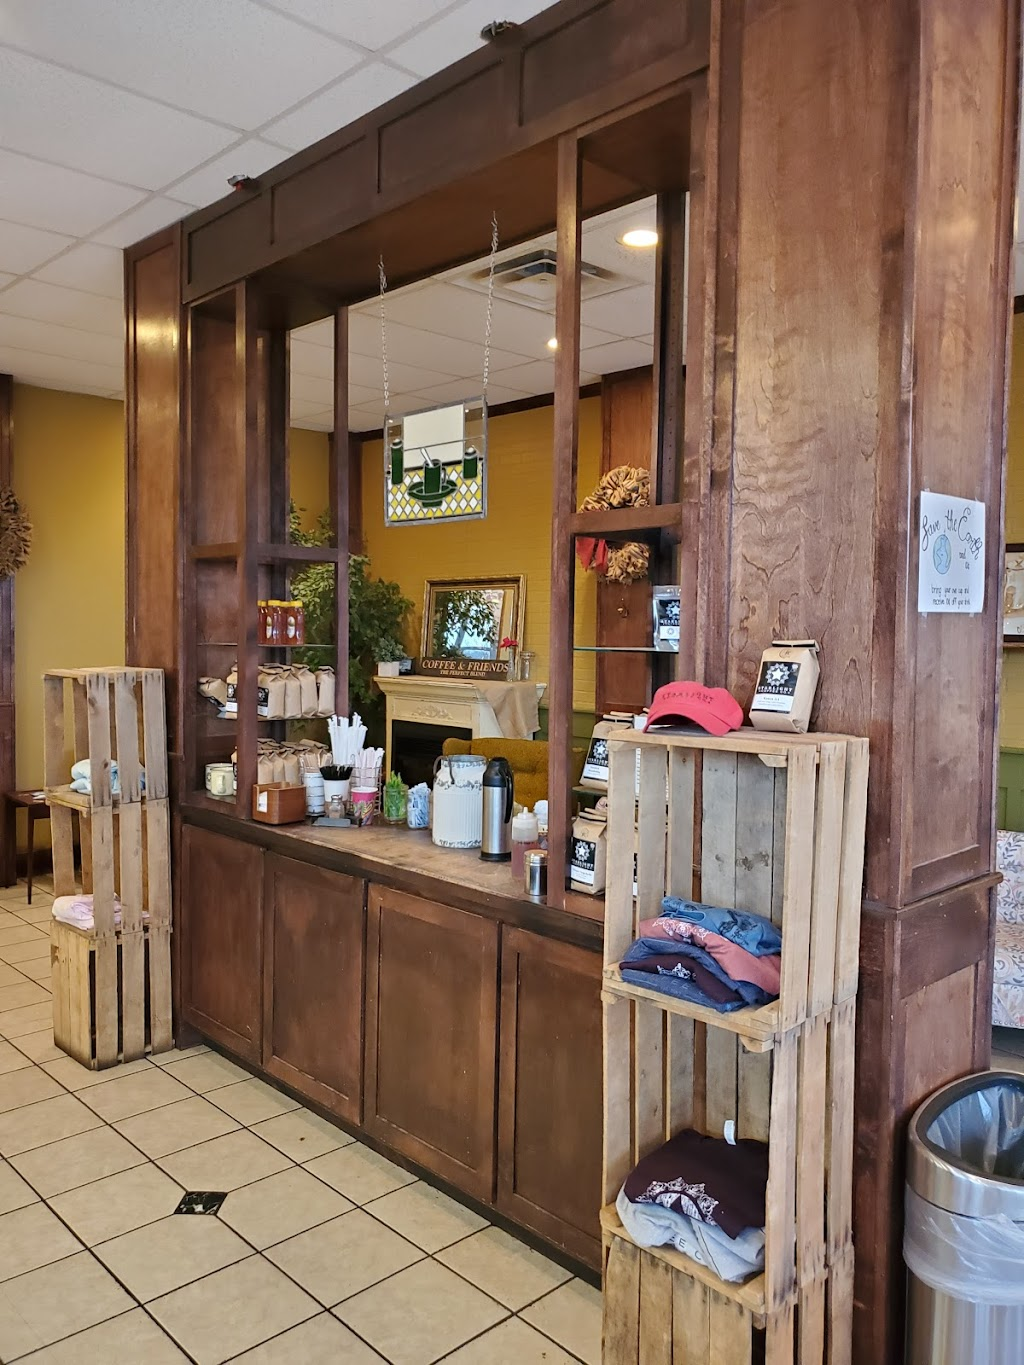 Starlight Coffee Co. - cafe  | Photo 5 of 9 | Address: 101 Lafollette Station Dr, Floyds Knobs, IN 47119, USA | Phone: (812) 923-1404